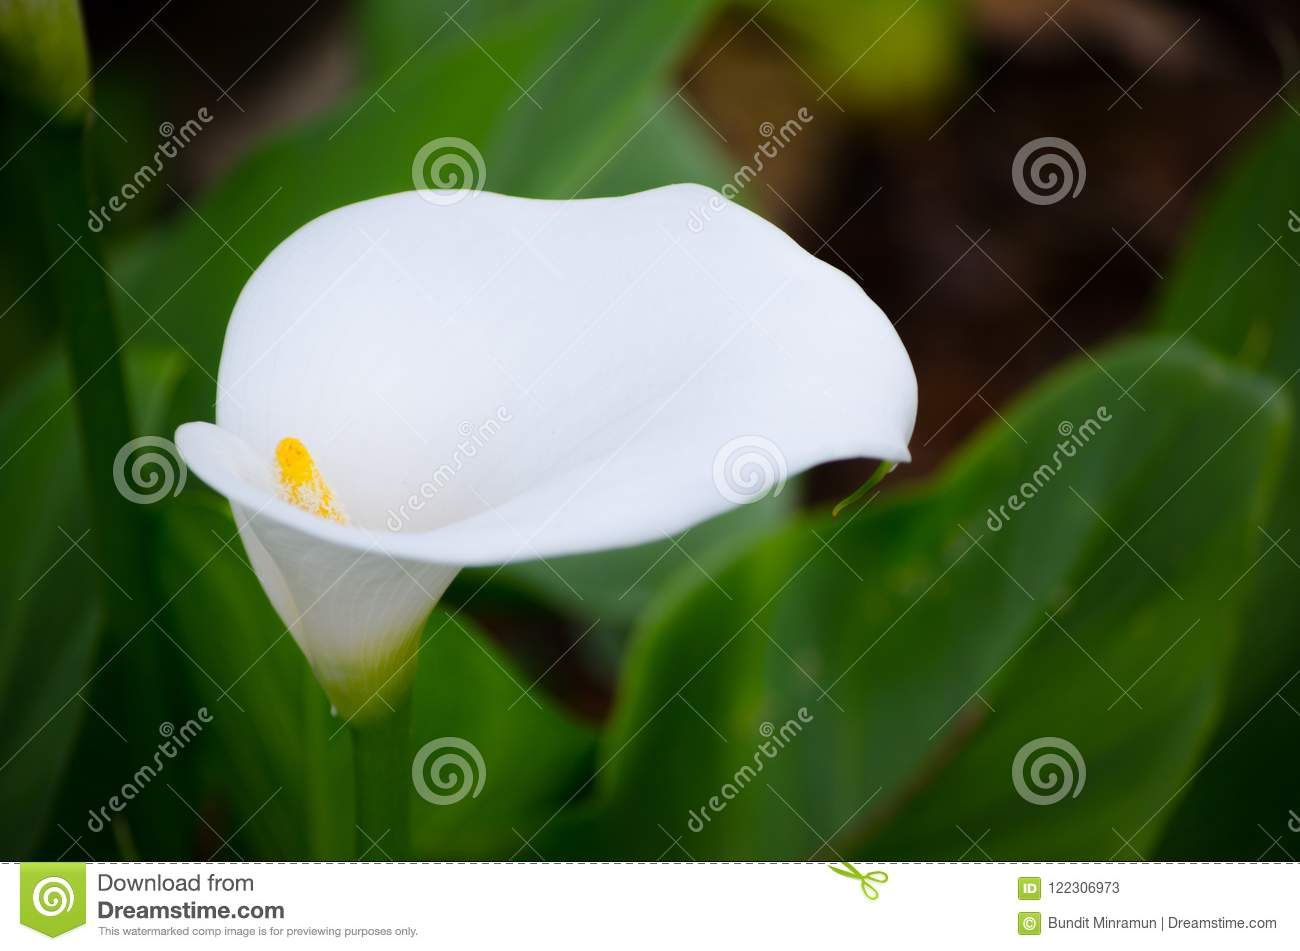 Beautiful lovely white calla lily flower at botanical garden stock download beautiful lovely white calla lily flower at botanical garden stock image image of izmirmasajfo